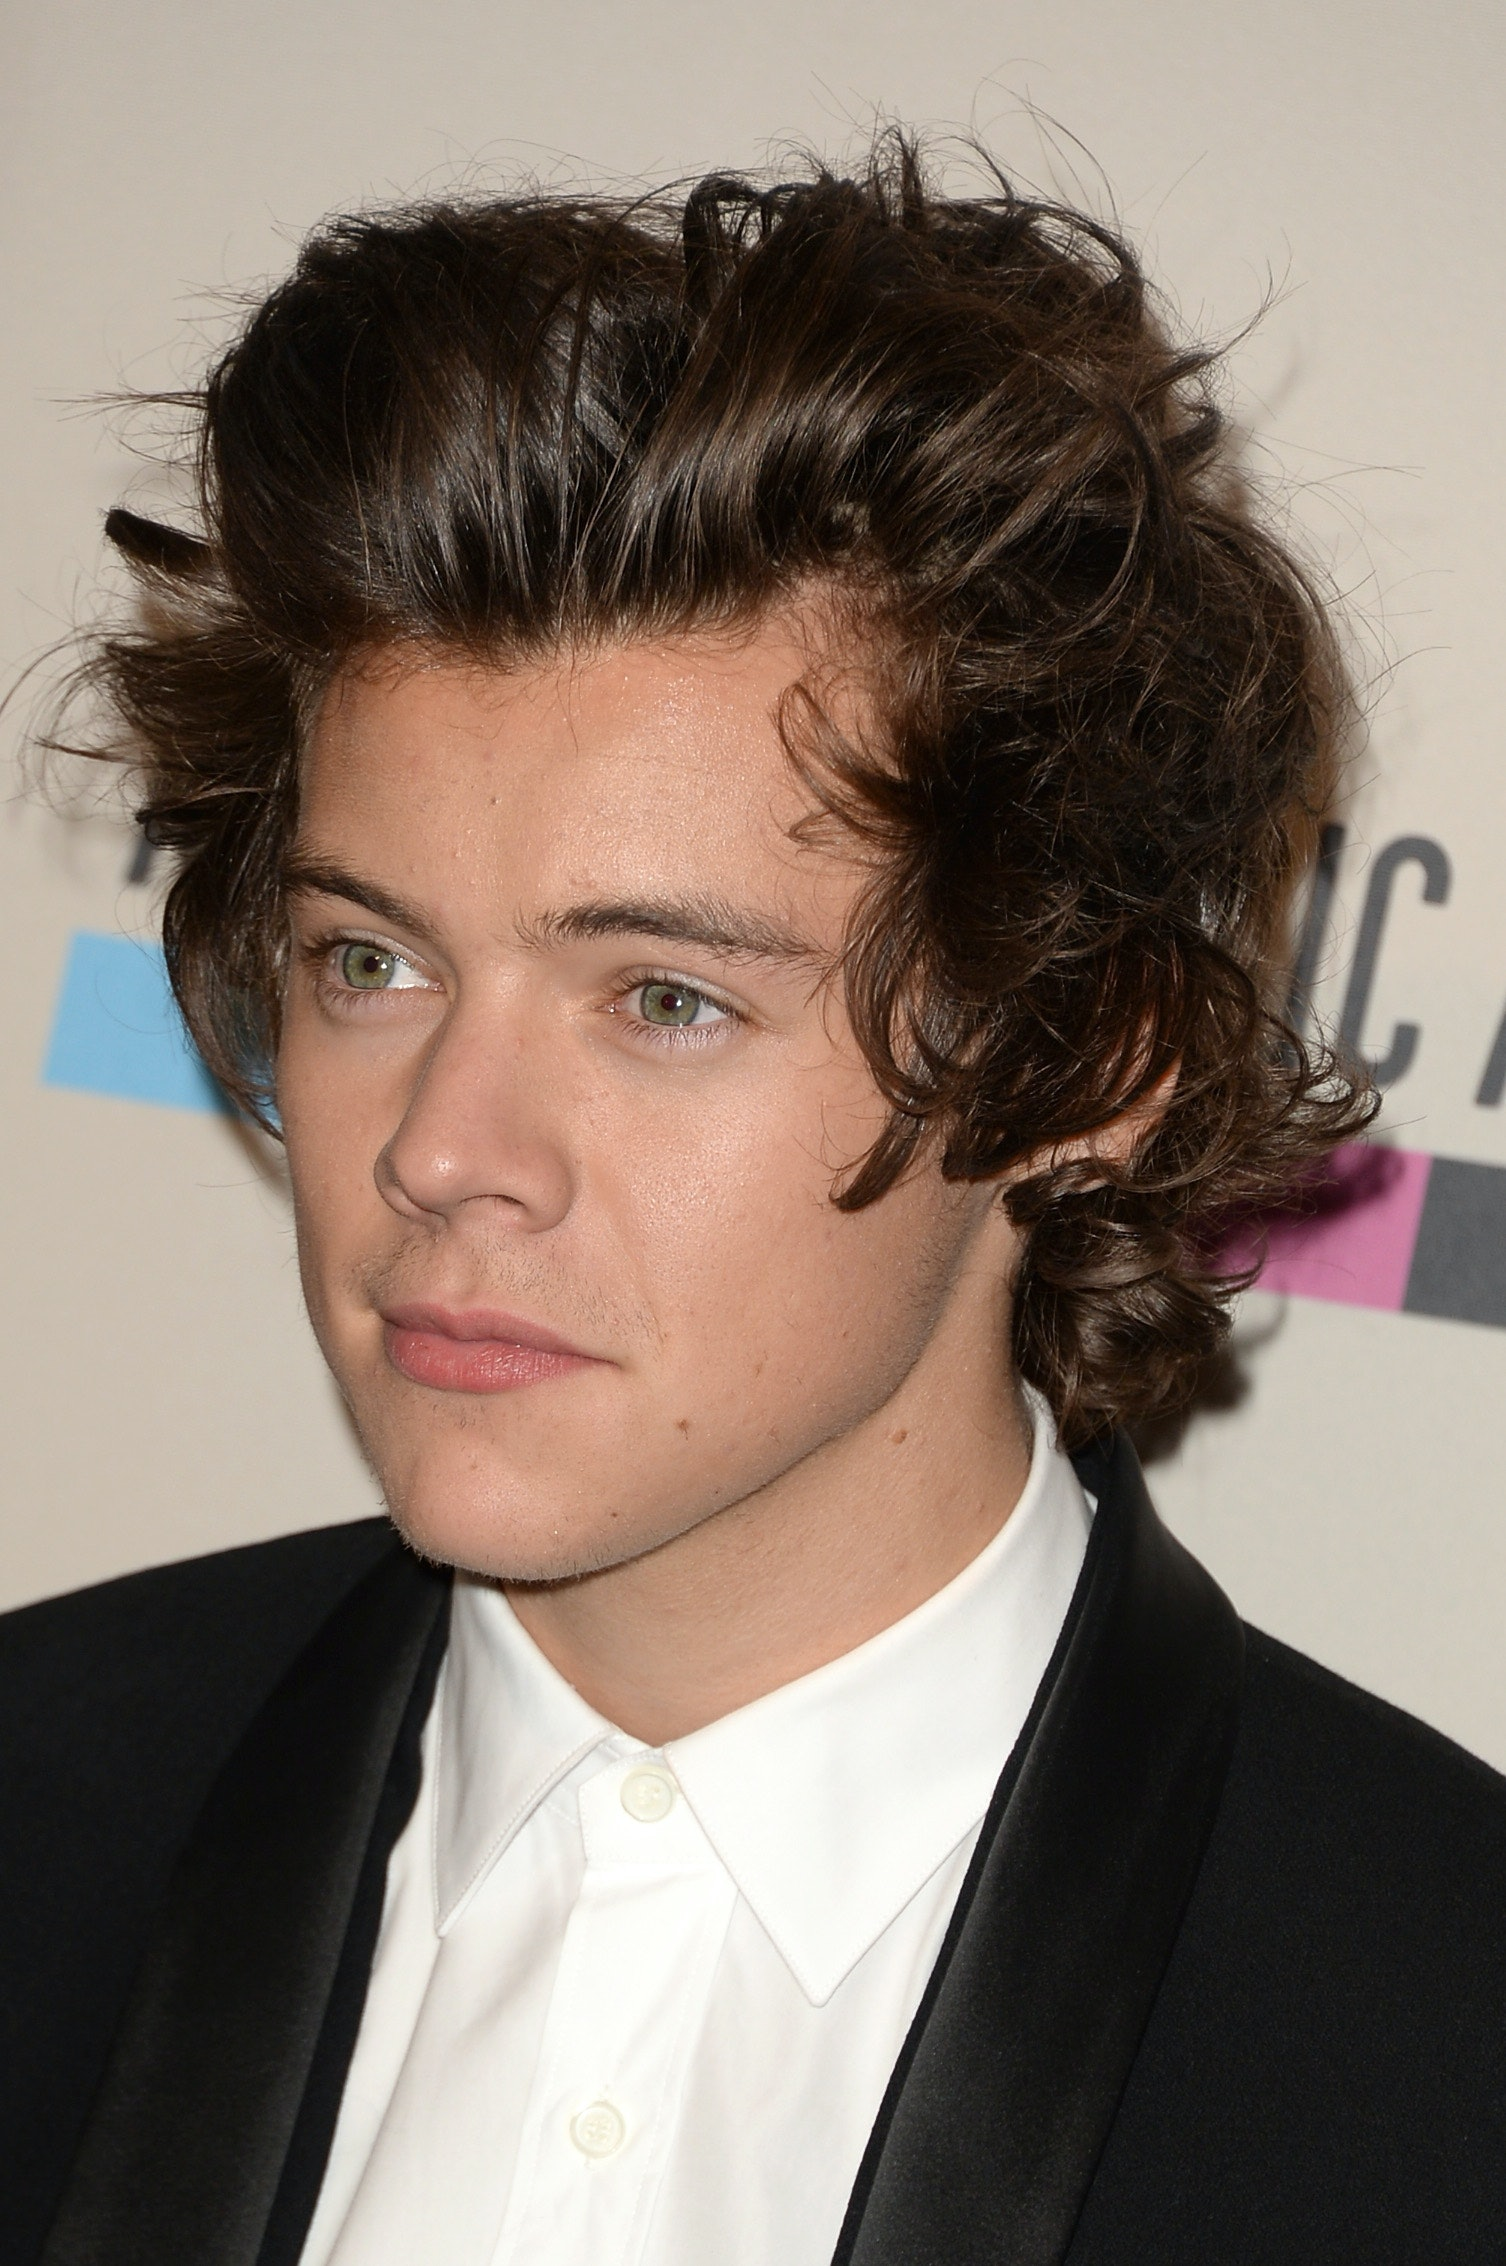 28 Harry Styles Hair Photos That Show His Evolution From Sideswoop